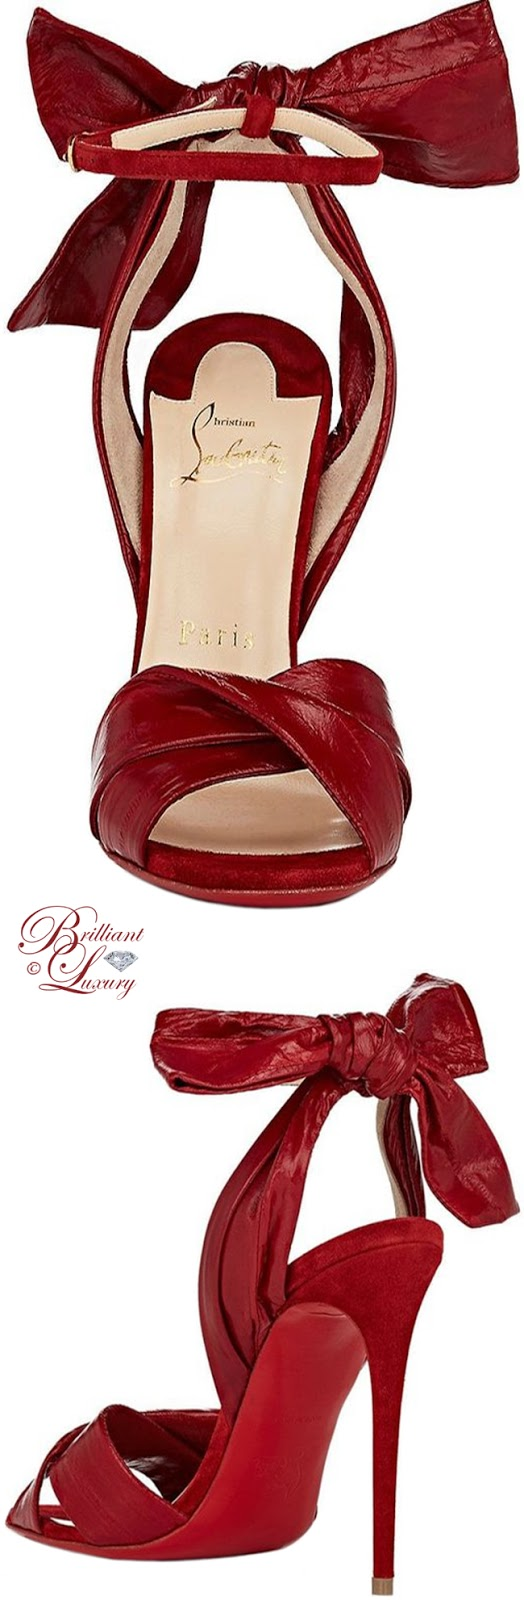 Brilliant Luxury ♦ Christian Louboutin Marylineska eelskin & suede ankle-strap sandals